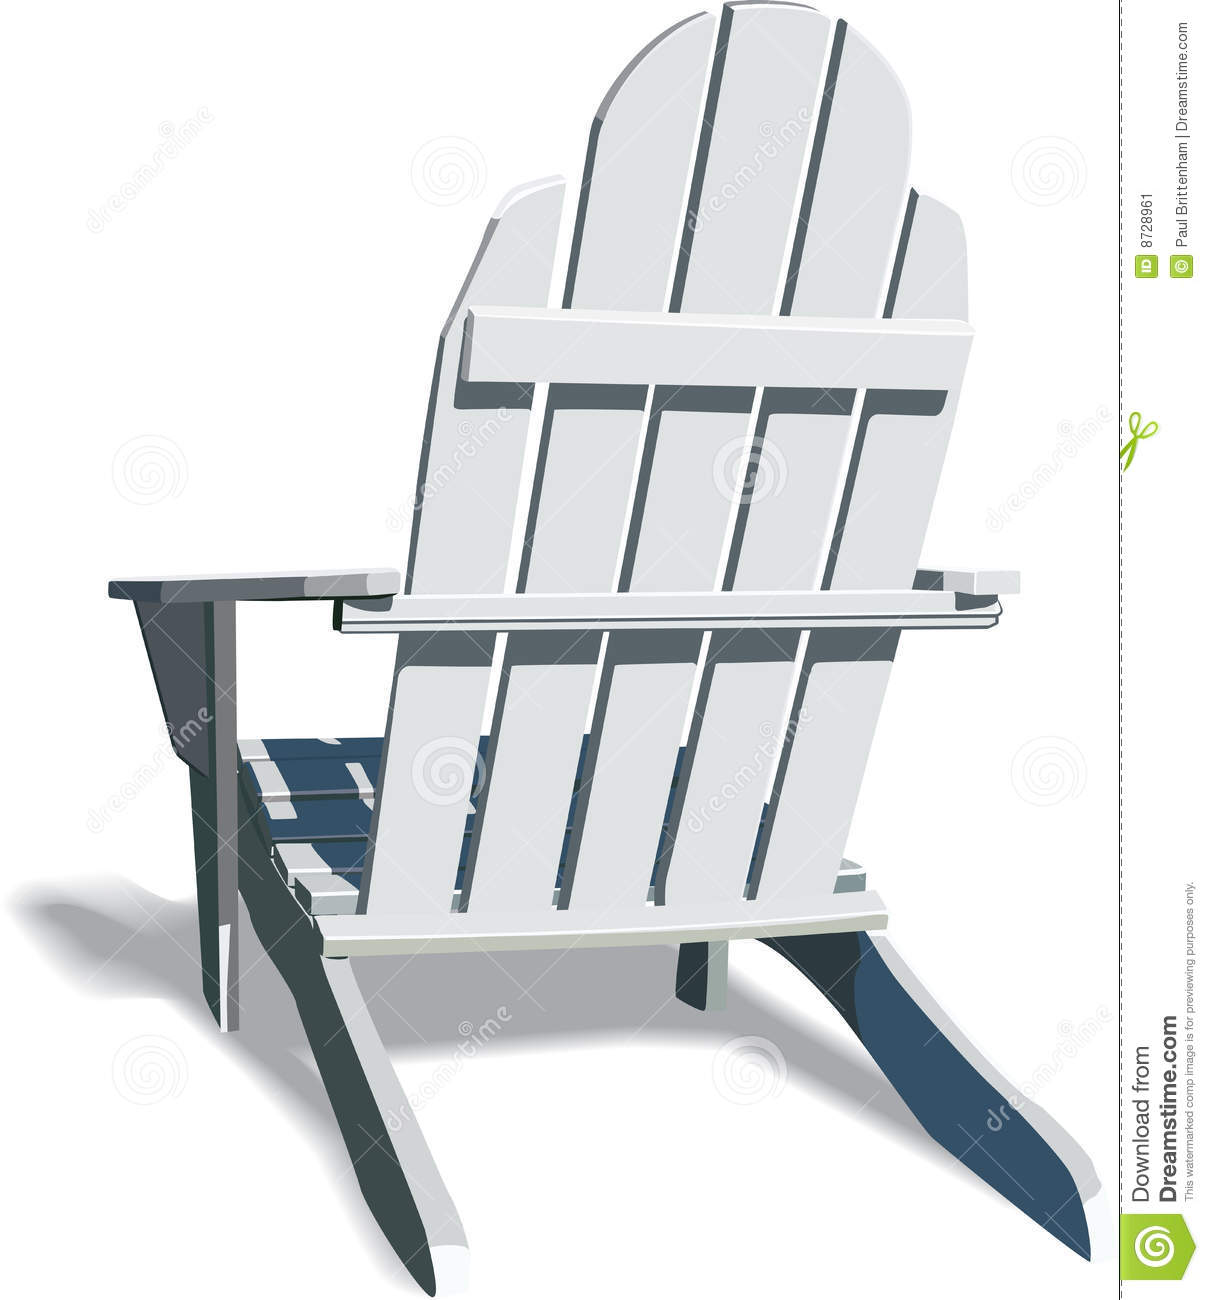 adirondack beach chair clip art back of adirondack chair clip art    Adirondack Beach Chair Clip Art